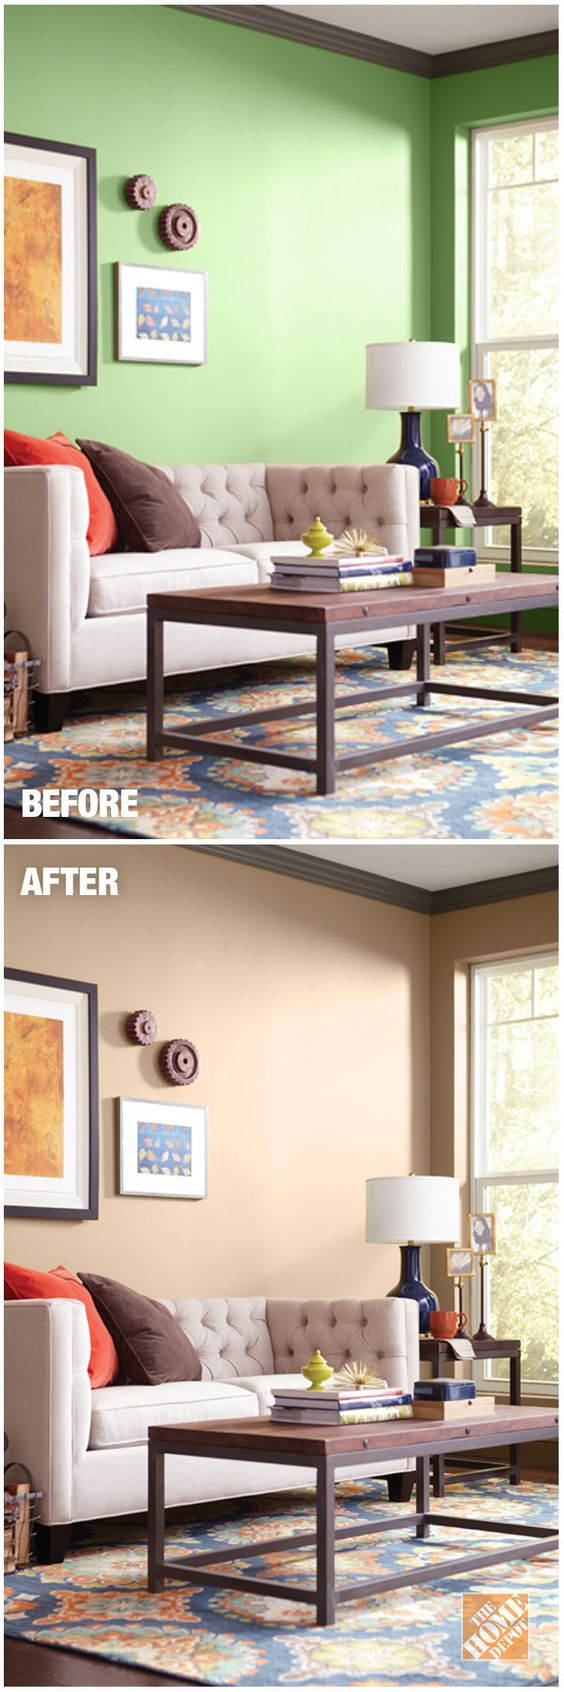 behr paint can give a room a whole new look explore on on home depot behr paint colors interior id=97410